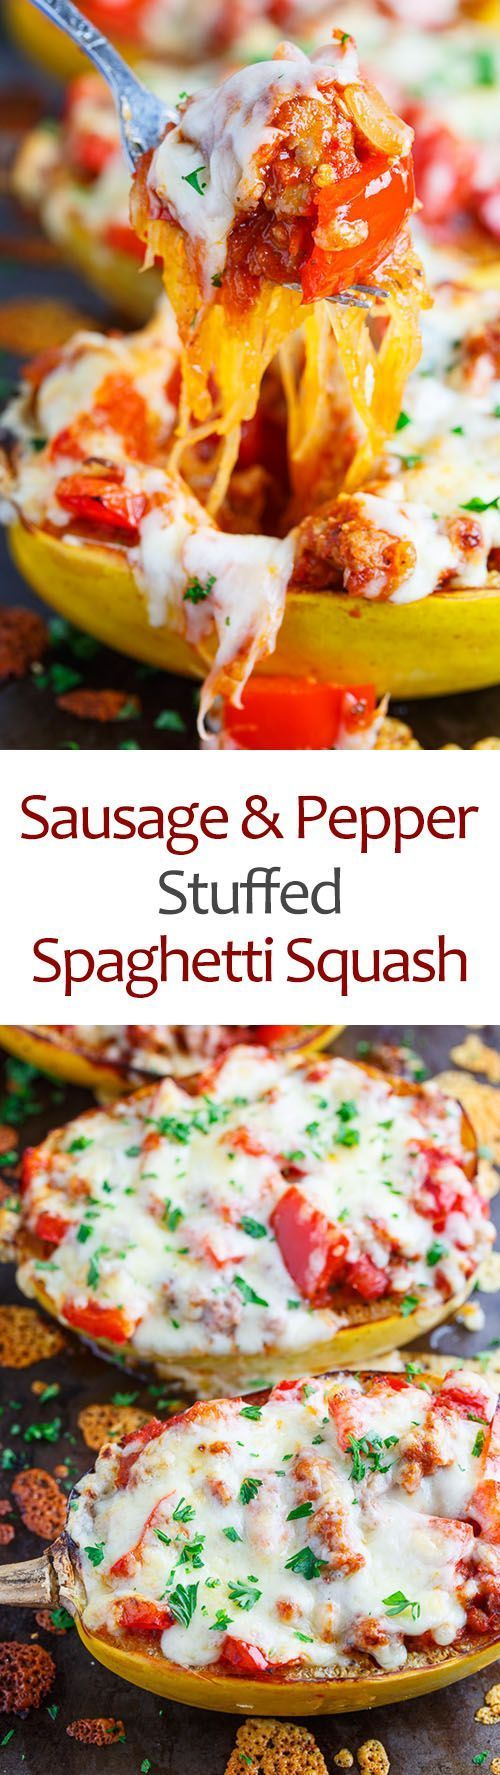 Sausage and Pepper Stuffed Spaghetti Squash - This recipe could not be easier. You simply roast some spaghetti squash stuff them with a mixture of Italian sausage and diced red peppers in a tomato sauce and cover it all in melted cheese!